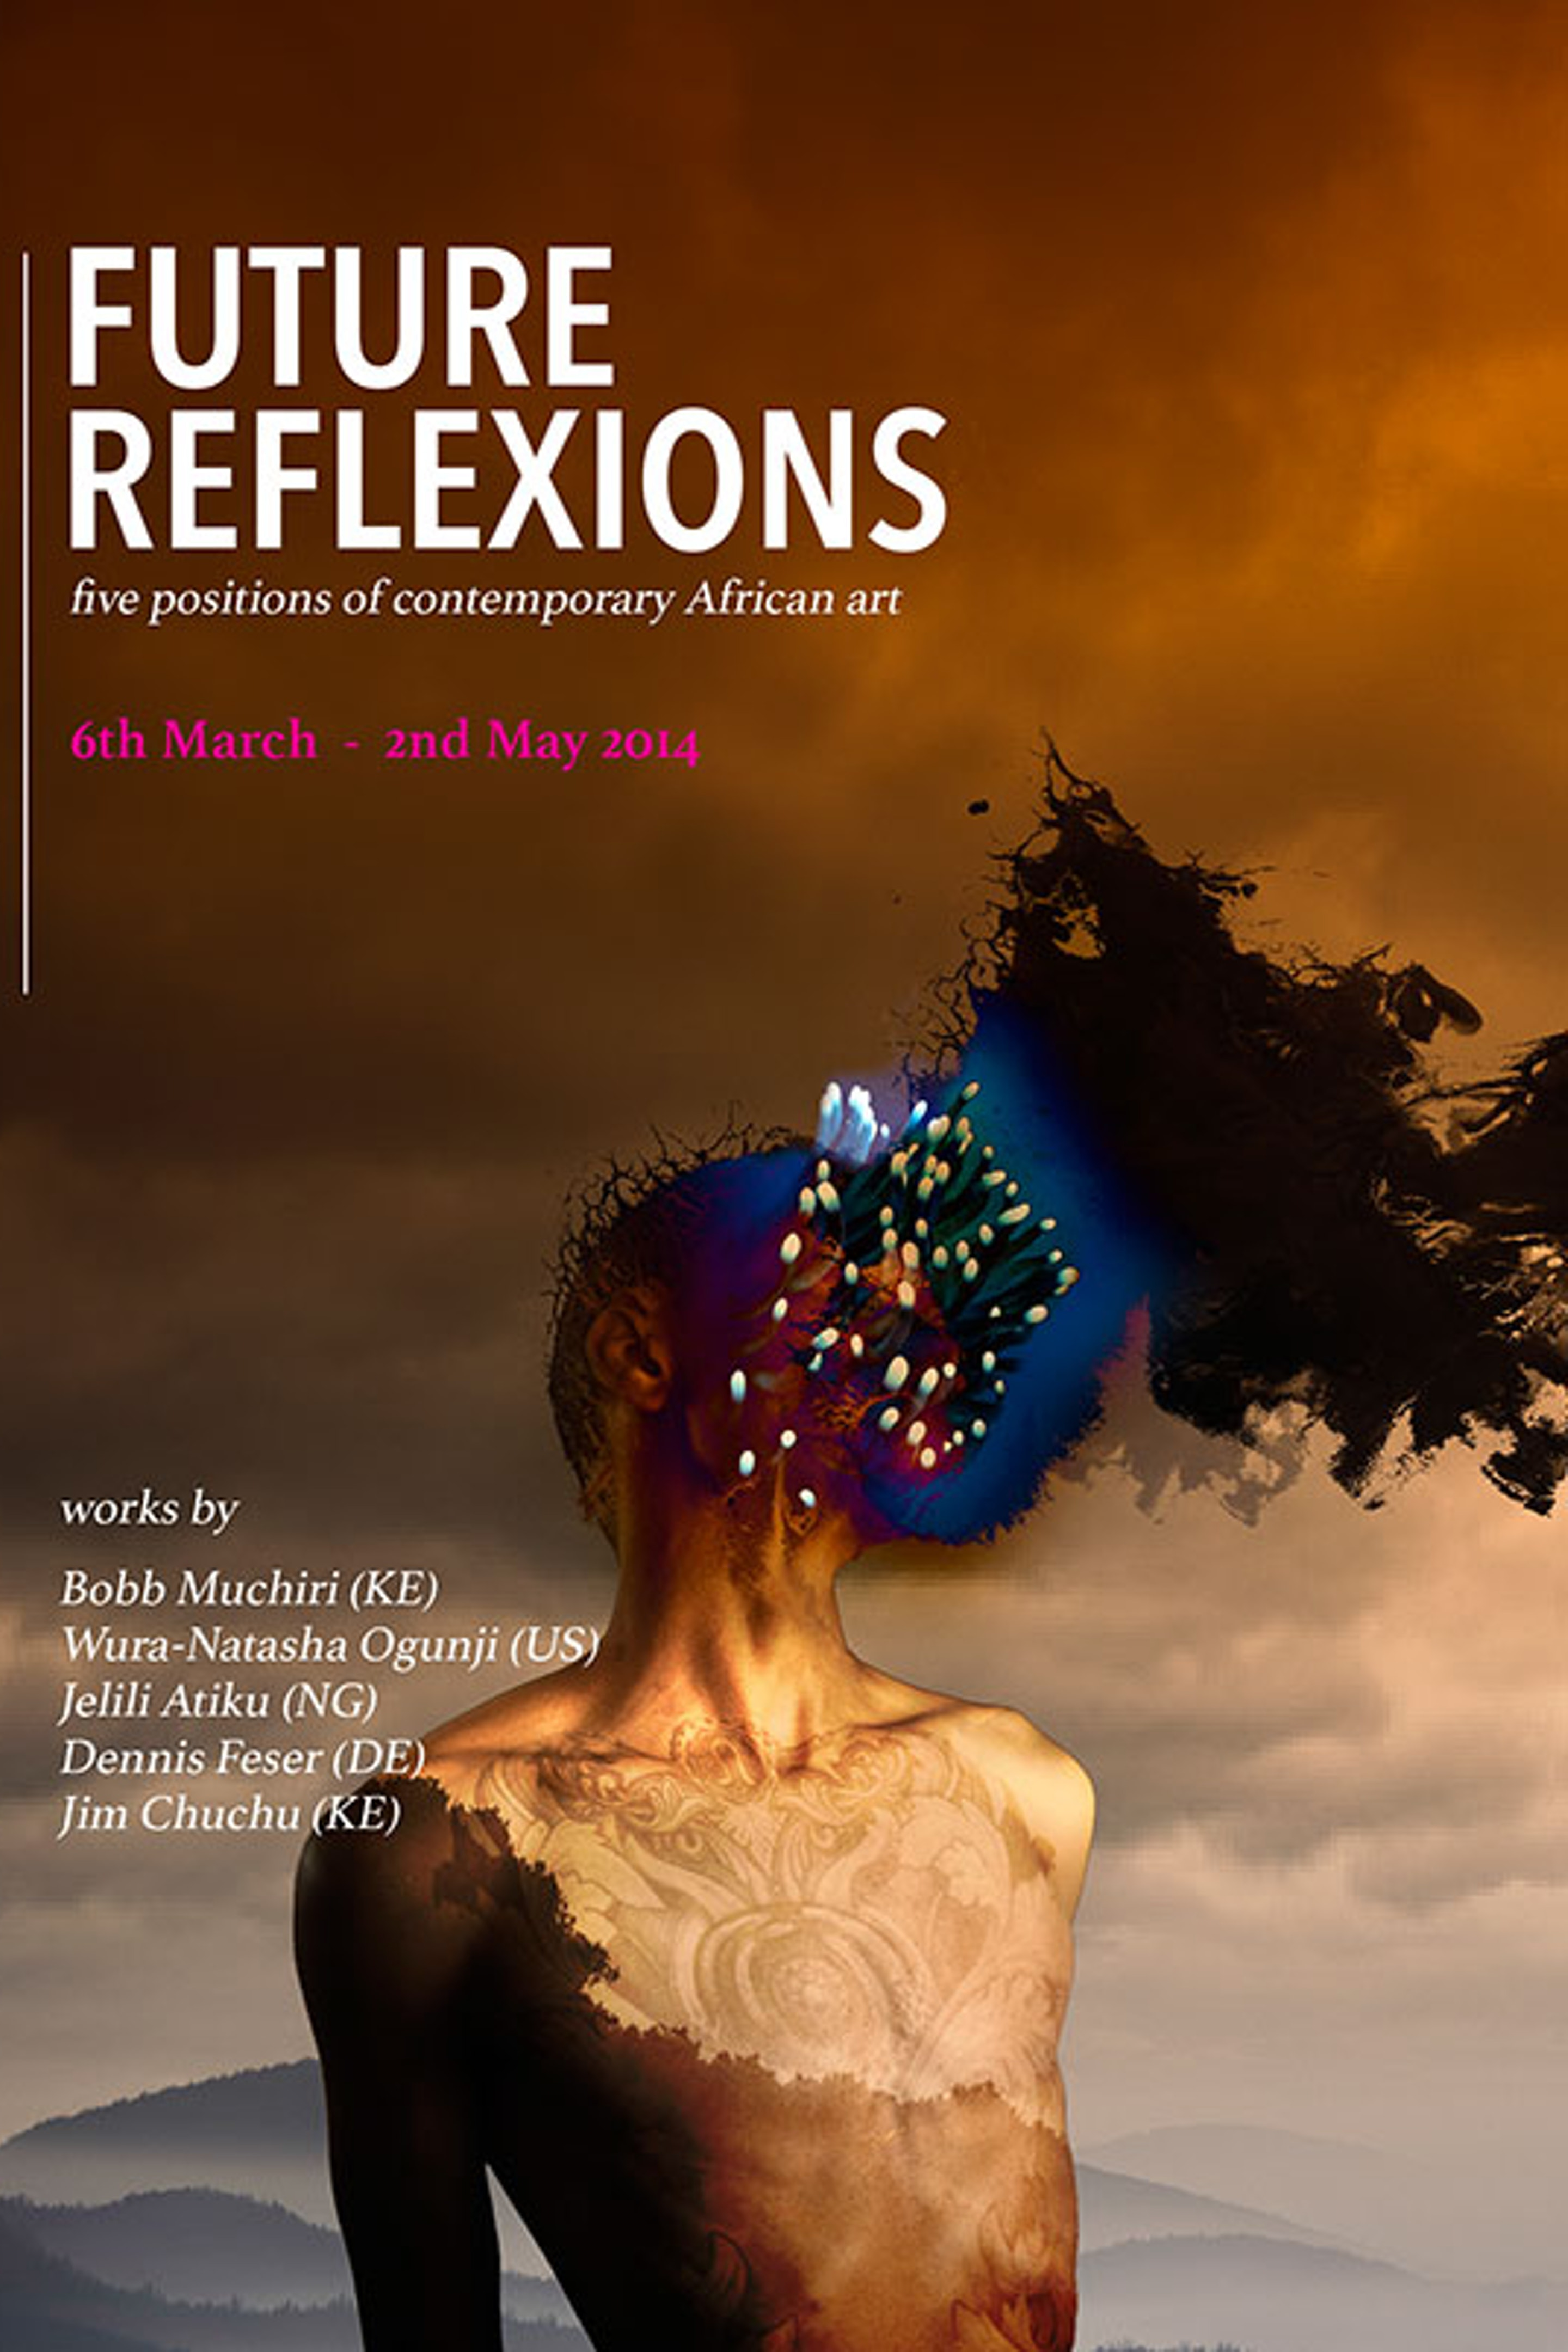 FUTURE REFLECTIONS EXHIBITION: Five positions of contemporary African Art